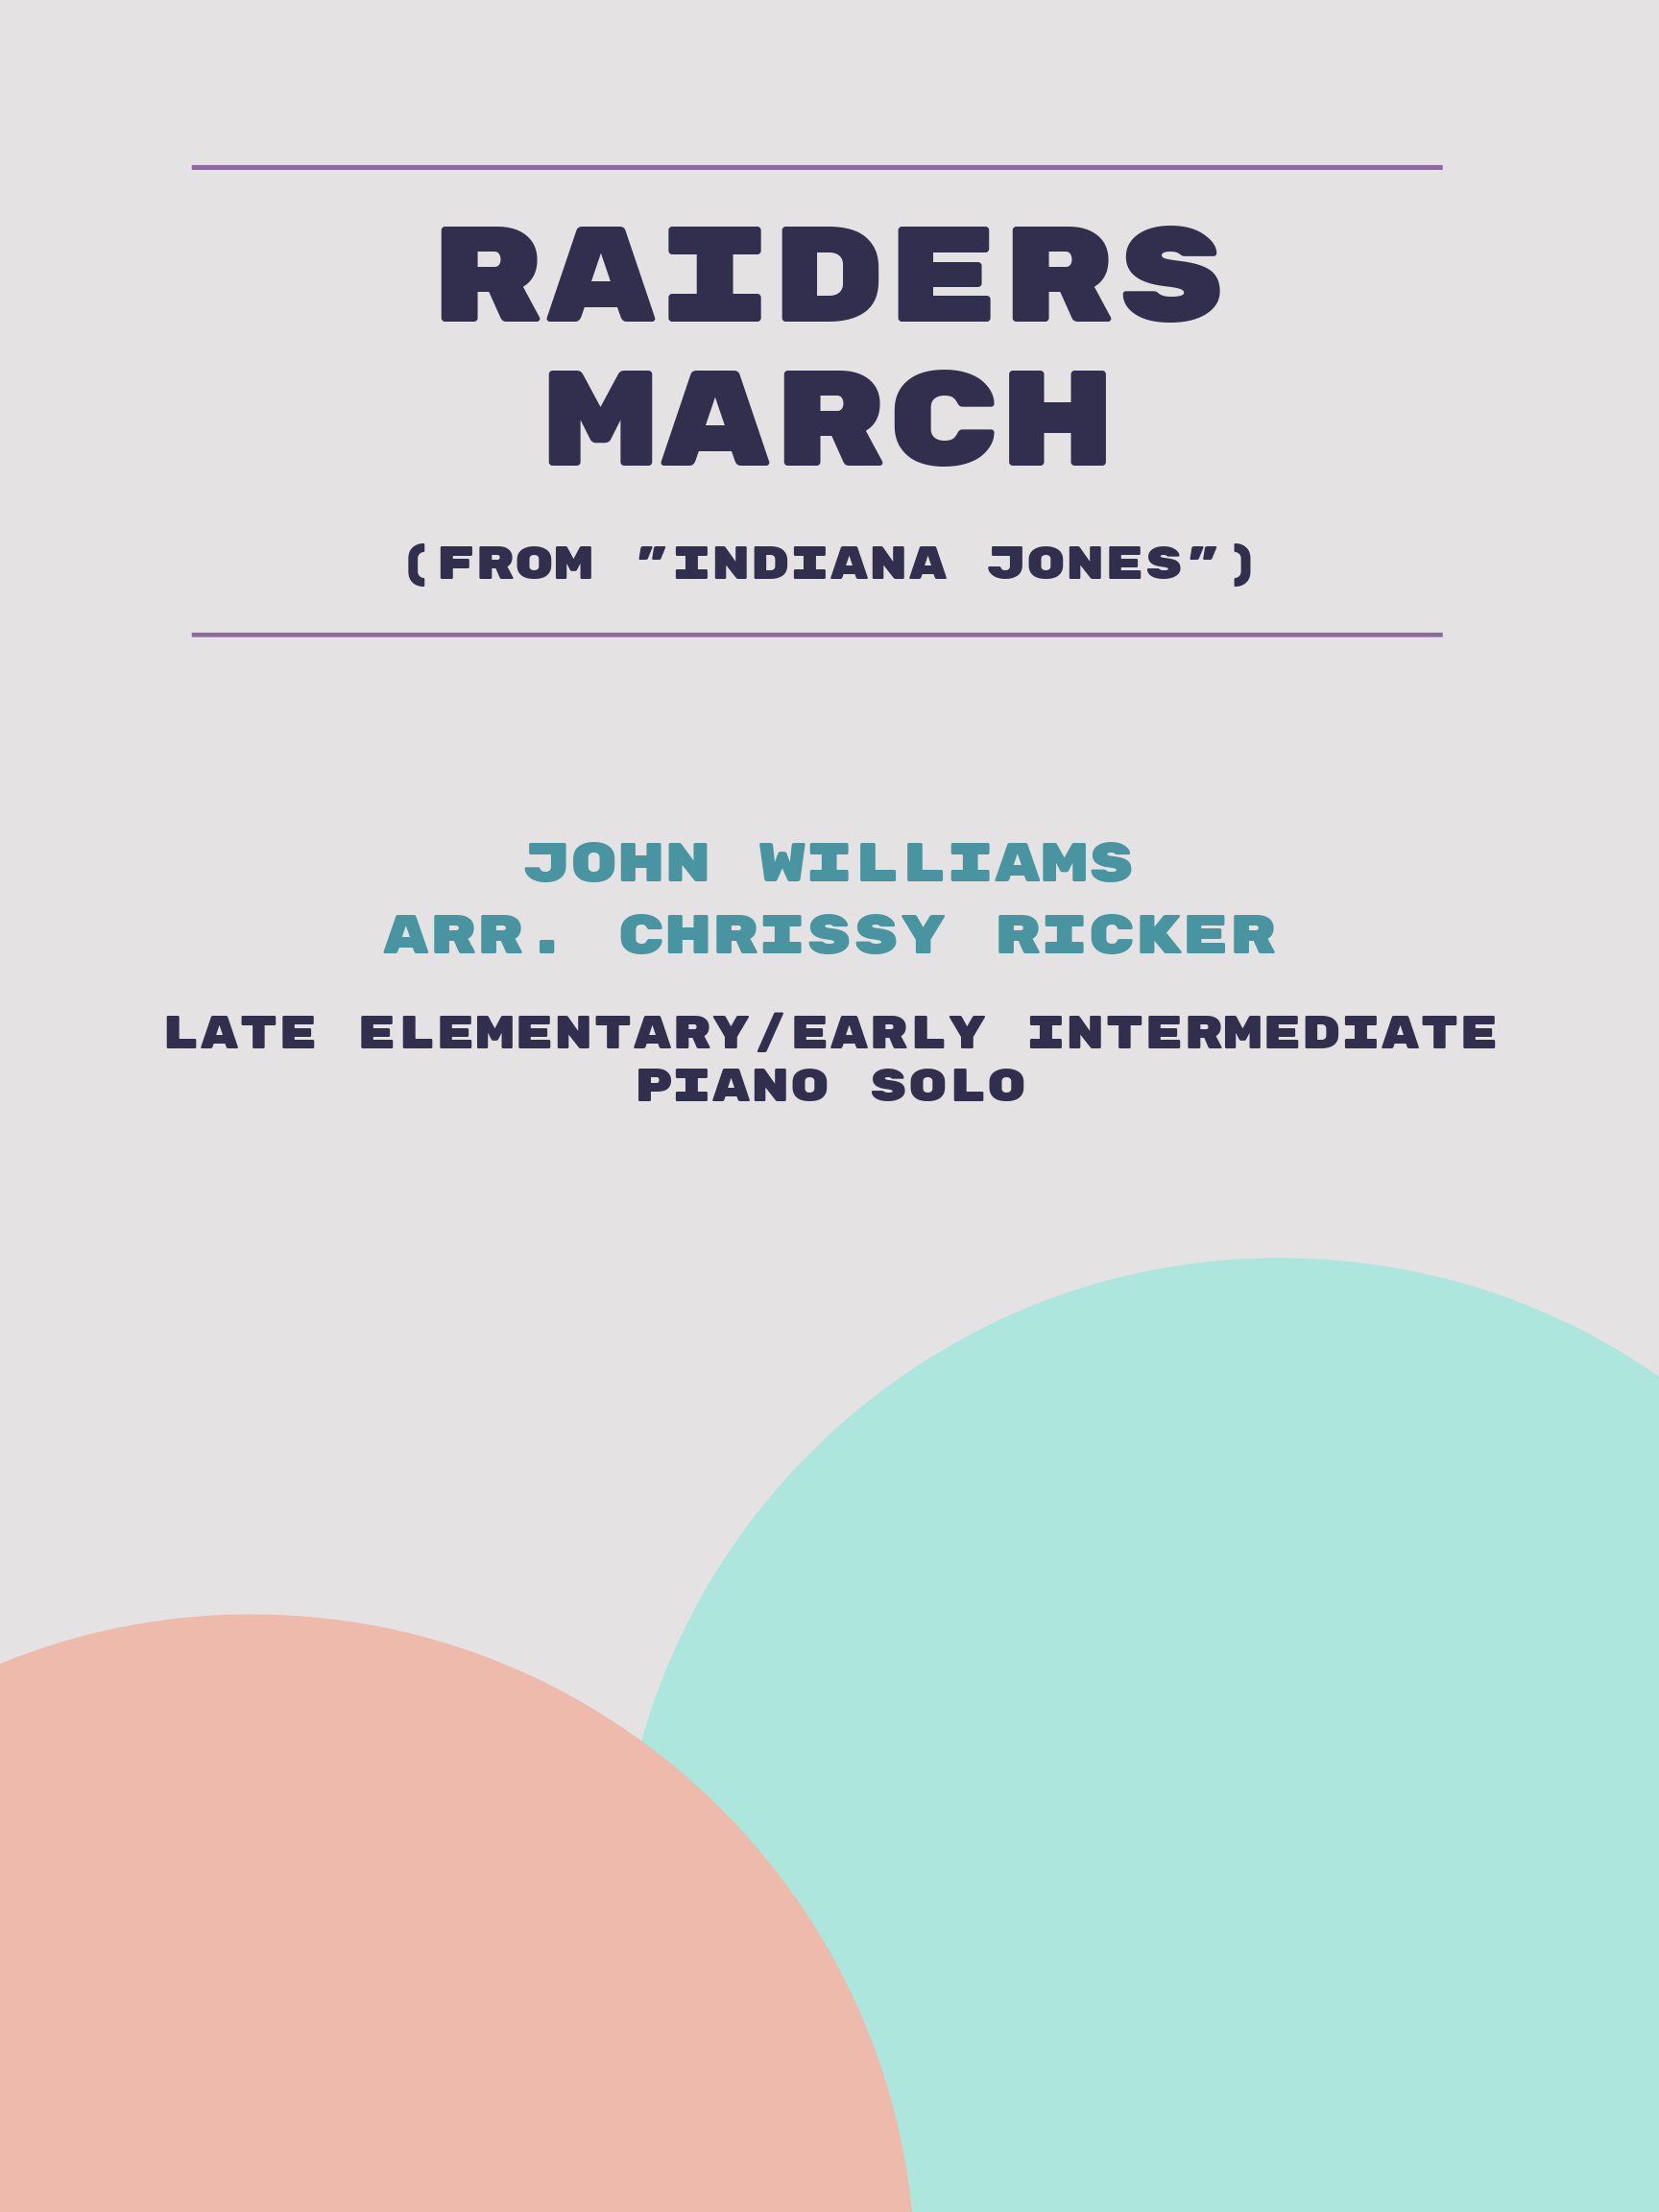 Raiders March by John Williams